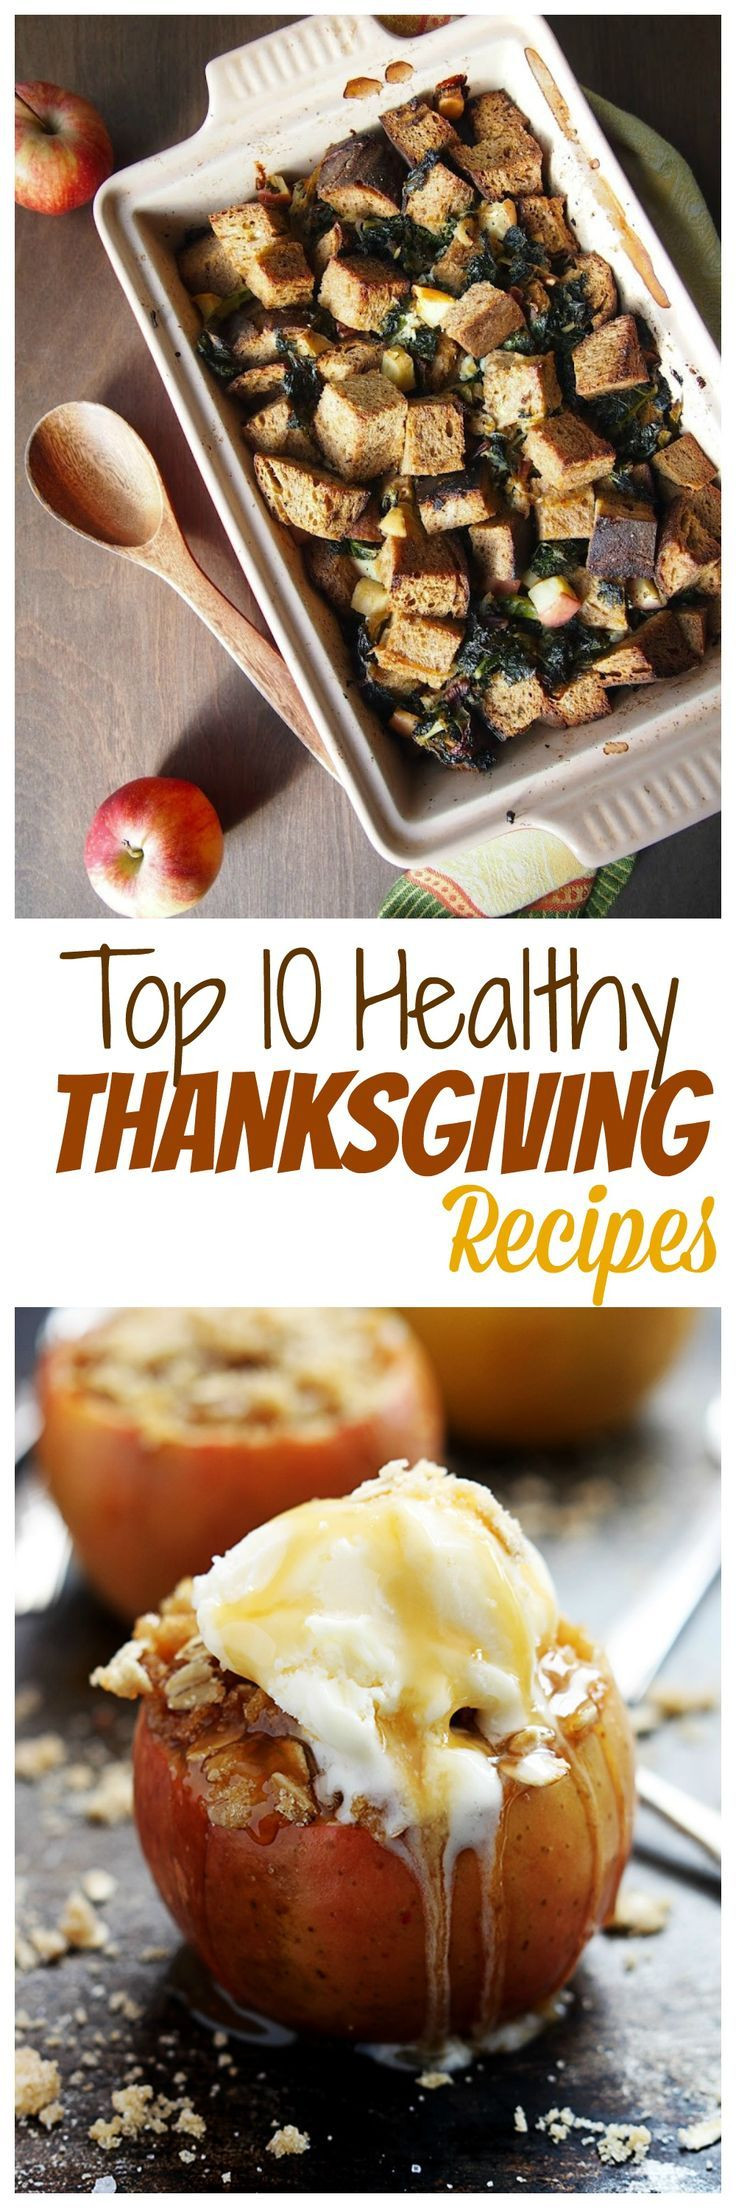 Low Calorie Thanksgiving Recipes  10 Best Healthy Thanksgiving Recipes for Low Calorie Sides